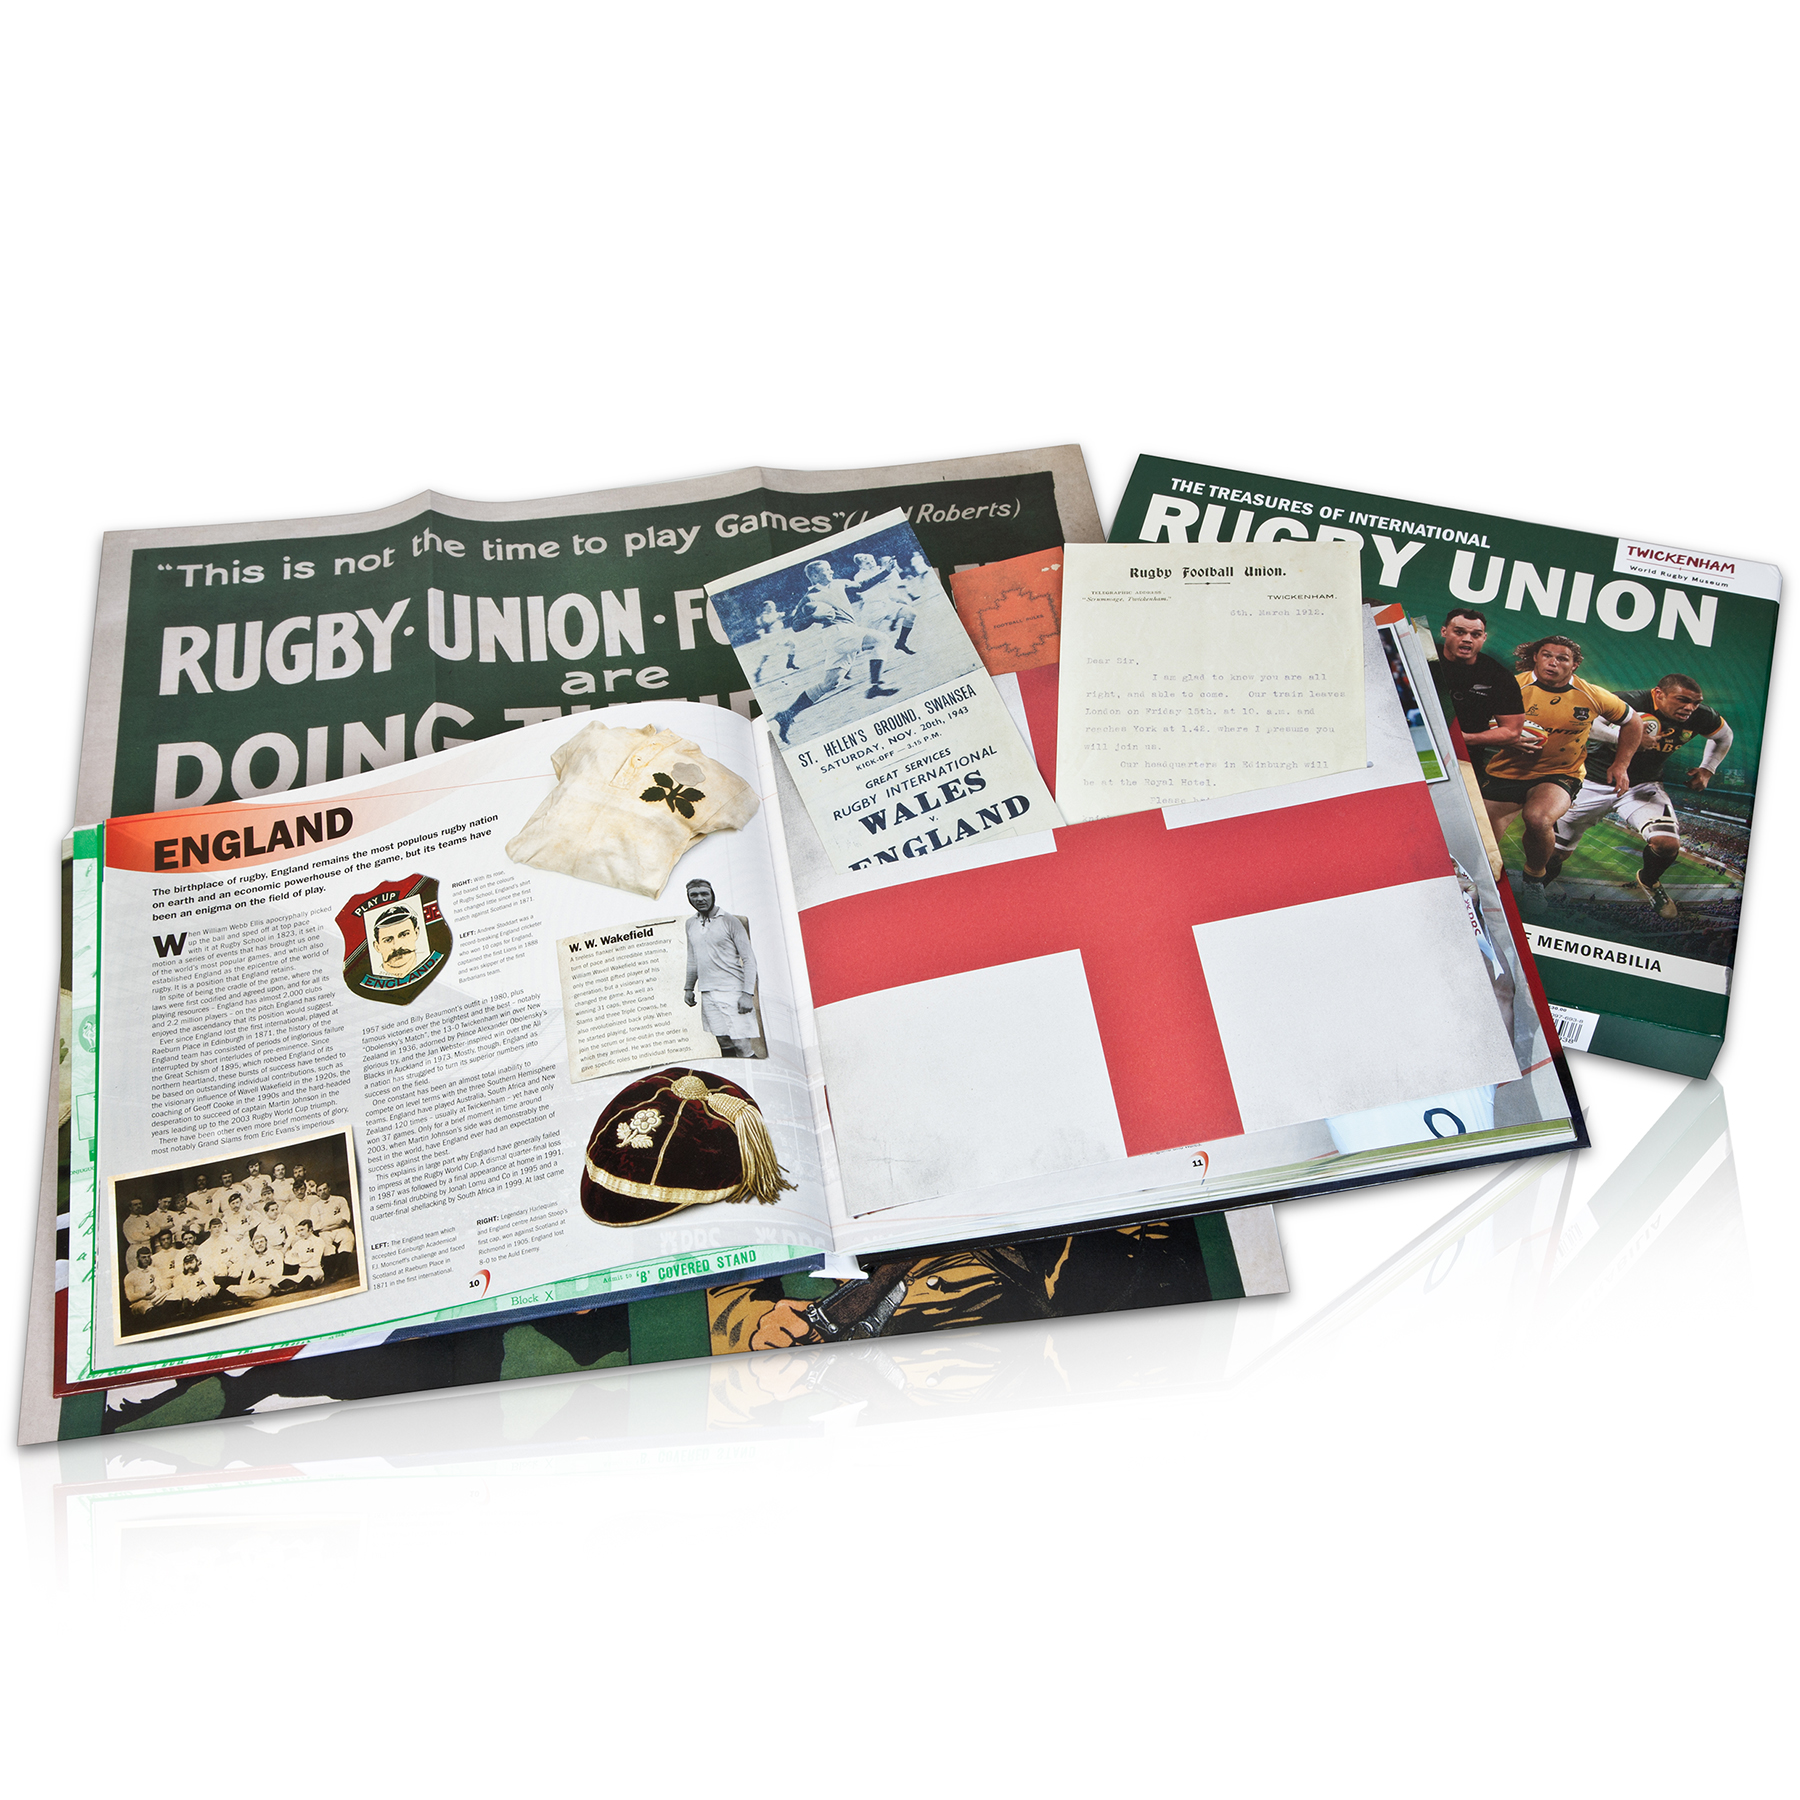 England The Treasures of International Rugby Union Book